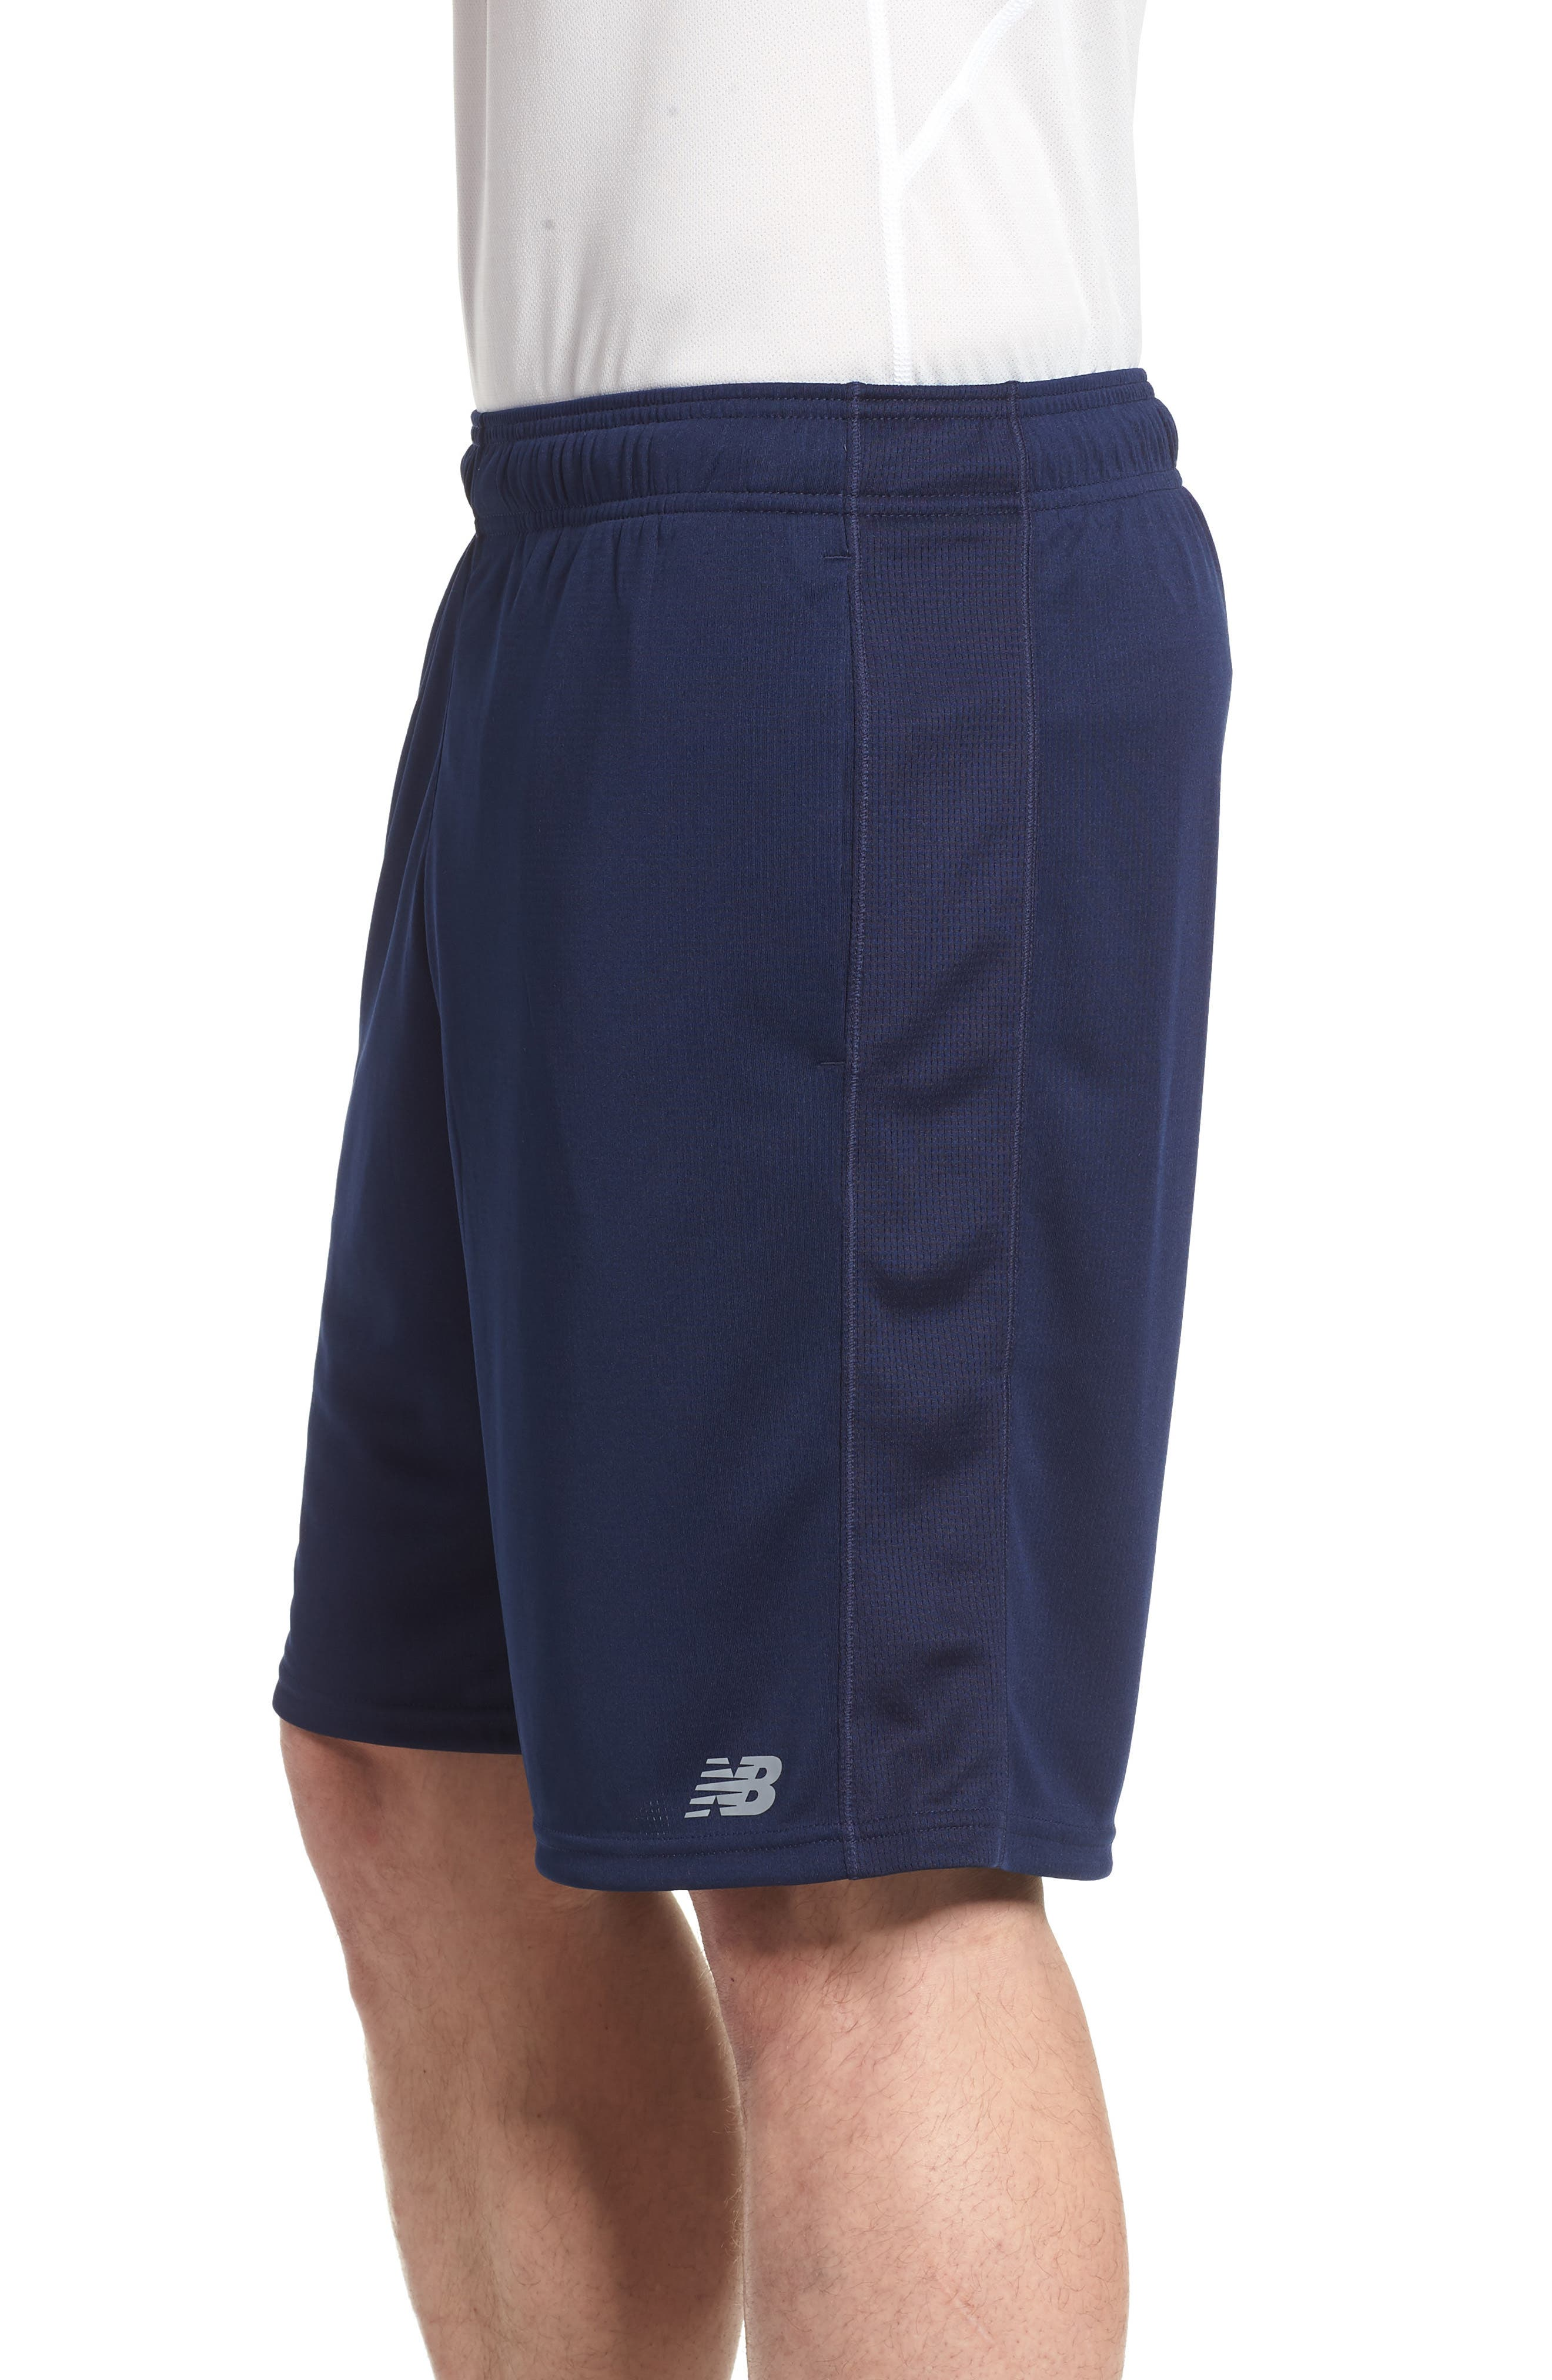 Versa Shorts,                             Alternate thumbnail 3, color,                             PIGMENT